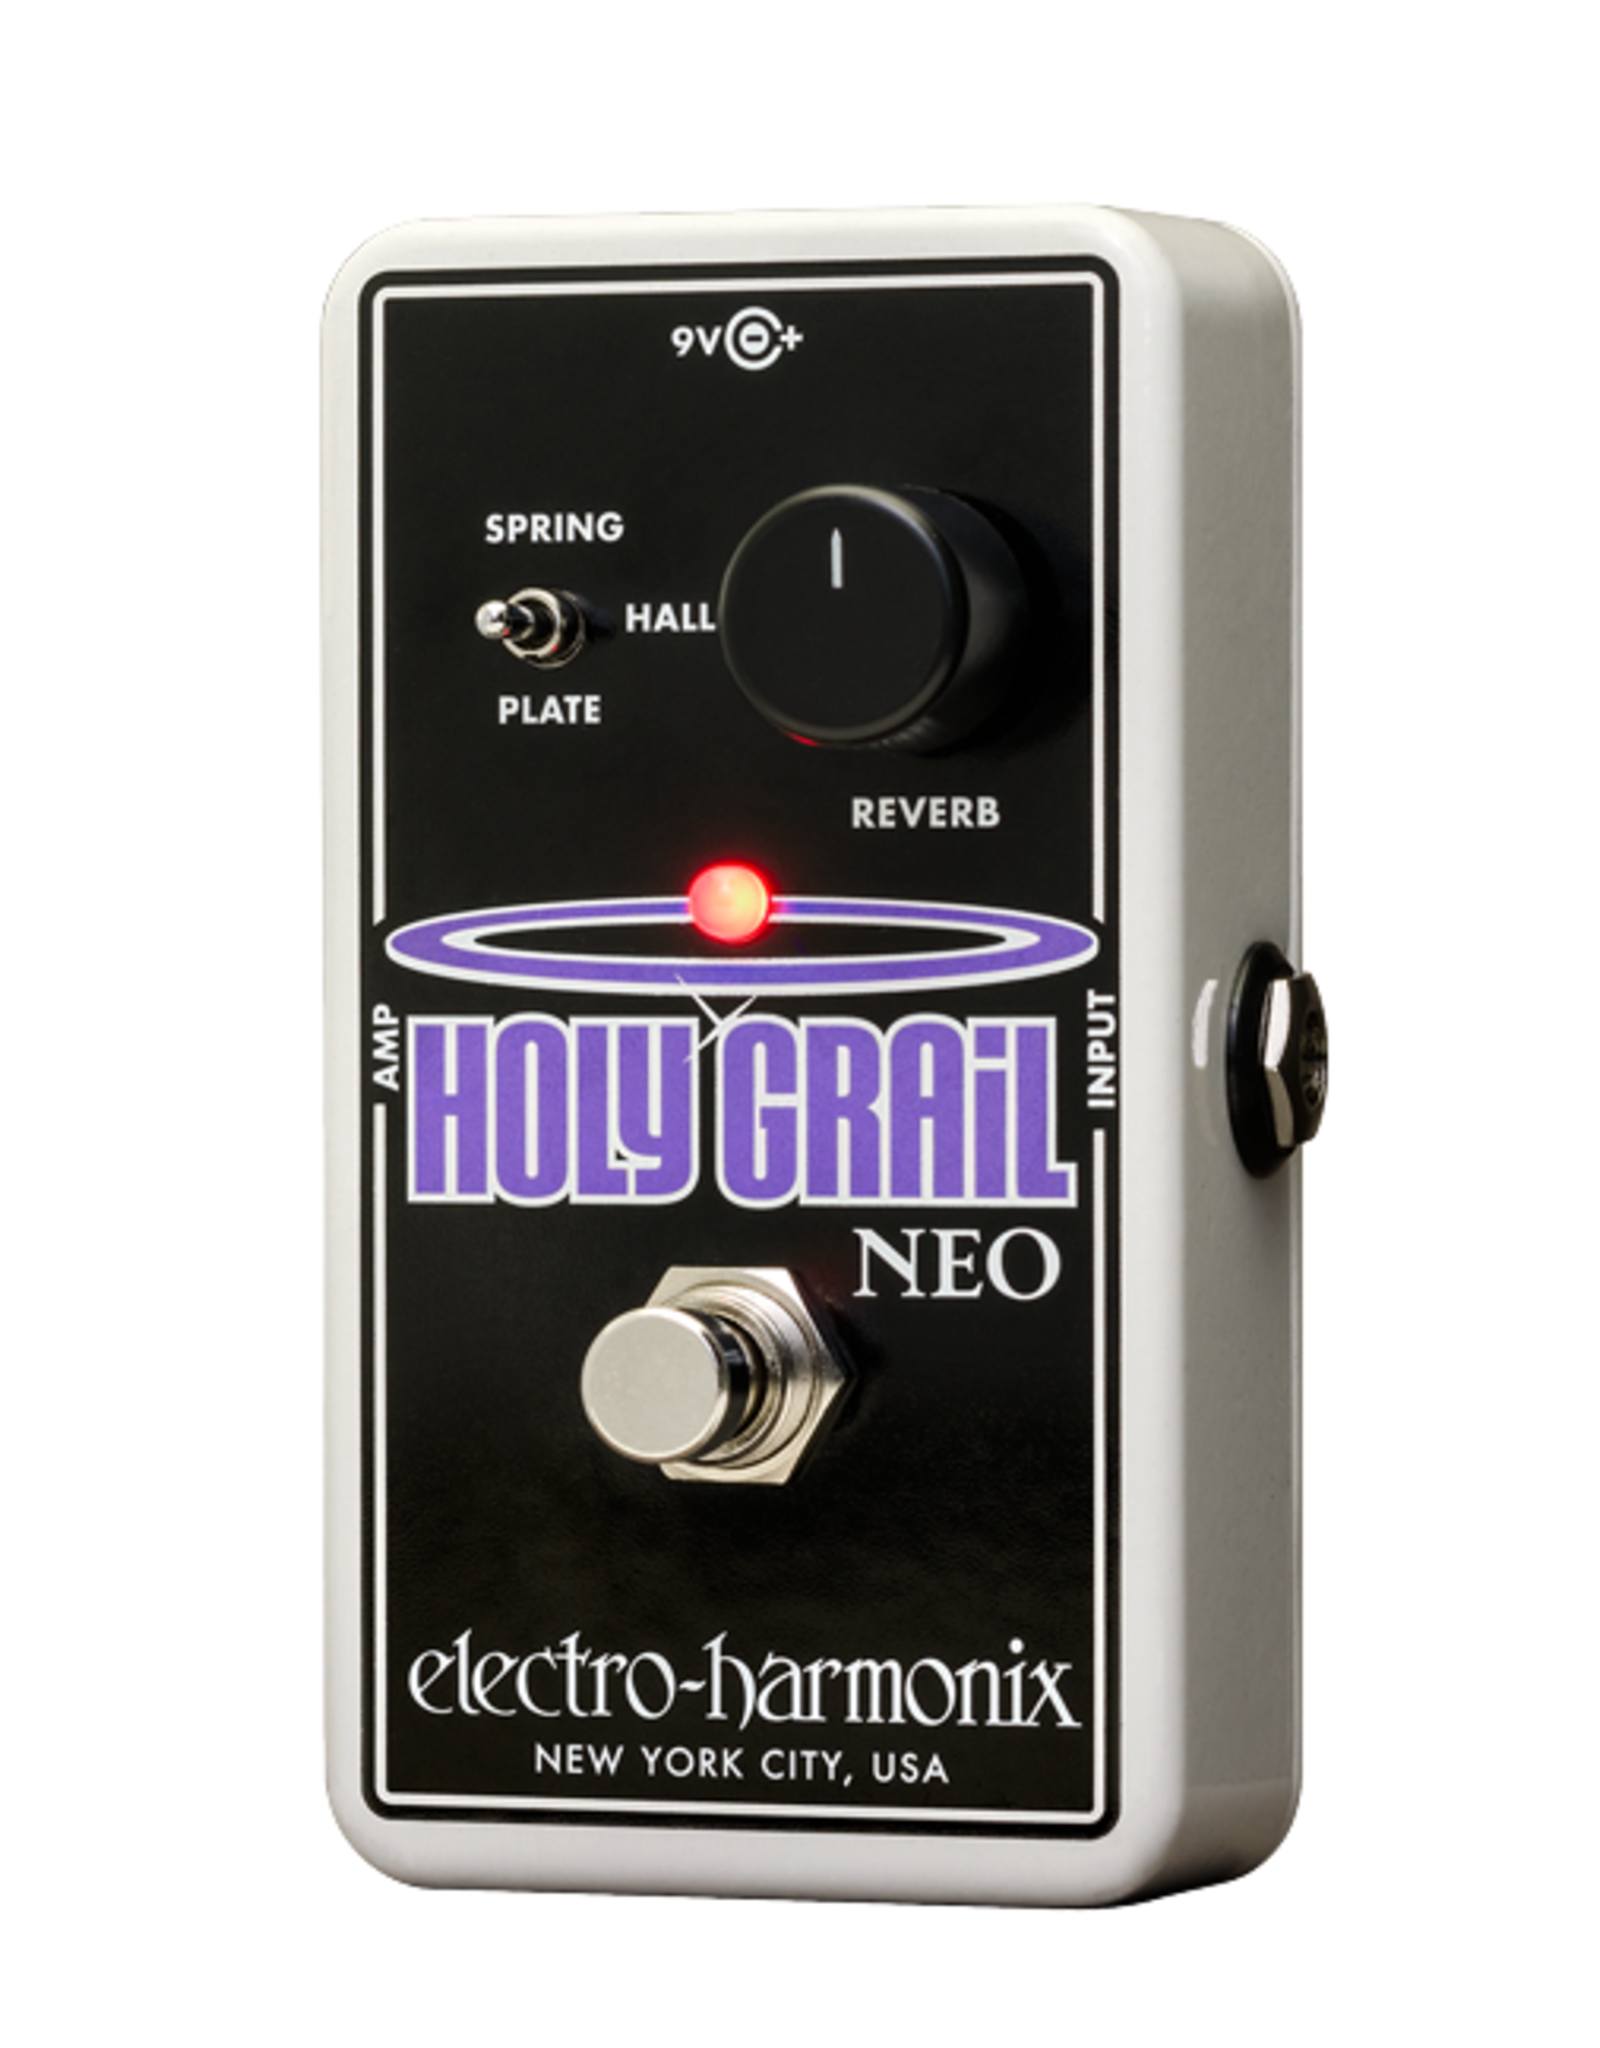 Electro-Harmonix EHX HOLY GRAIL NEO Reverb, 9.6DC-200 PSU included